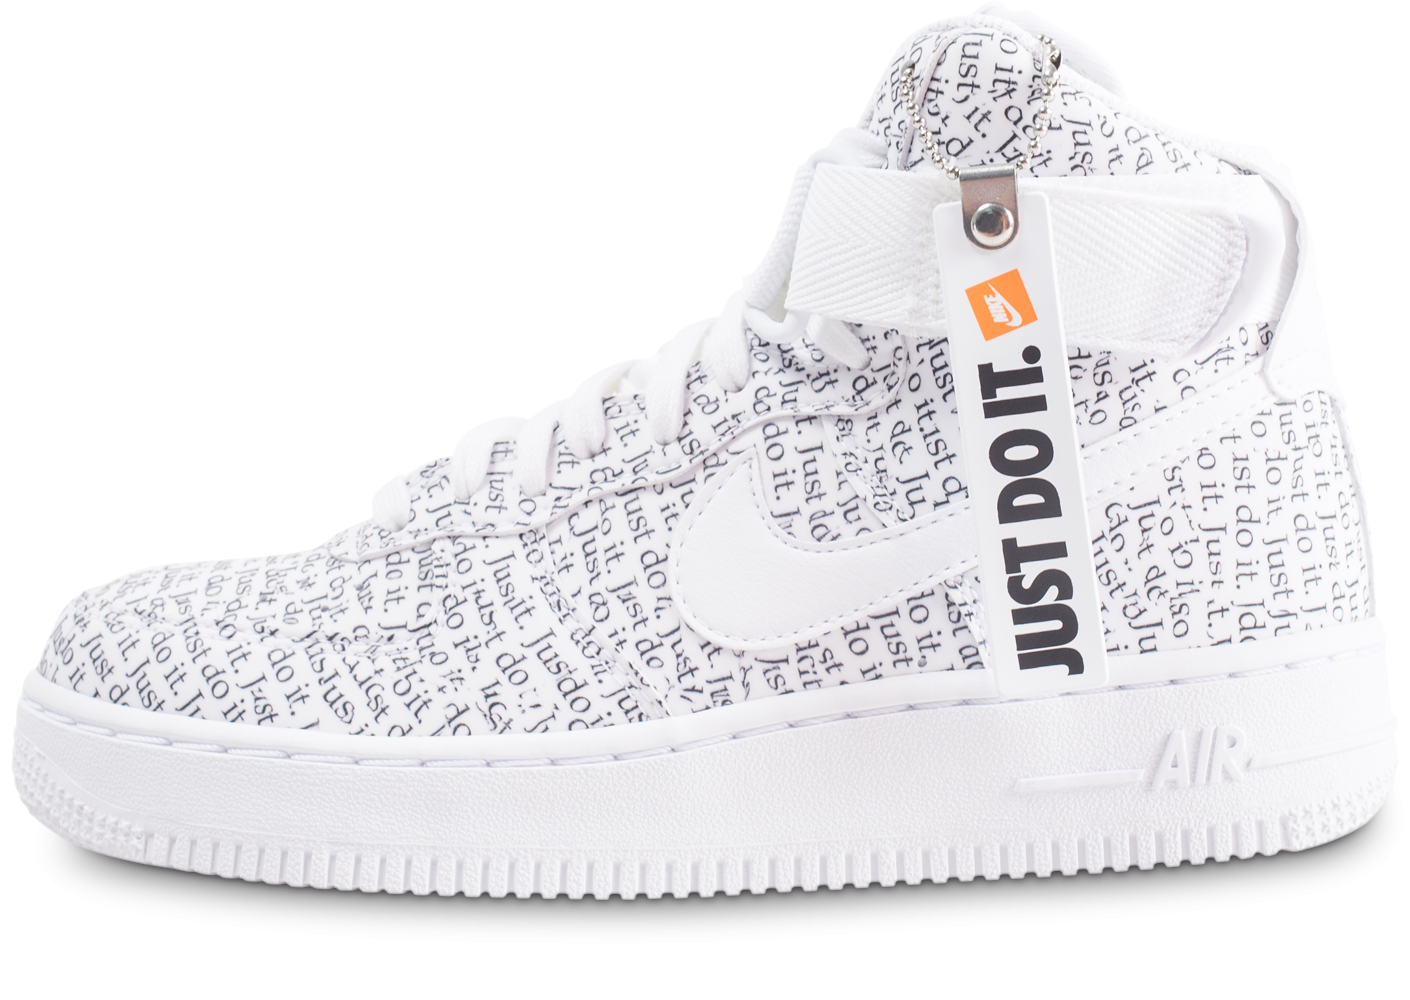 Nike Air Force 1 High Just do it LX blanche femme